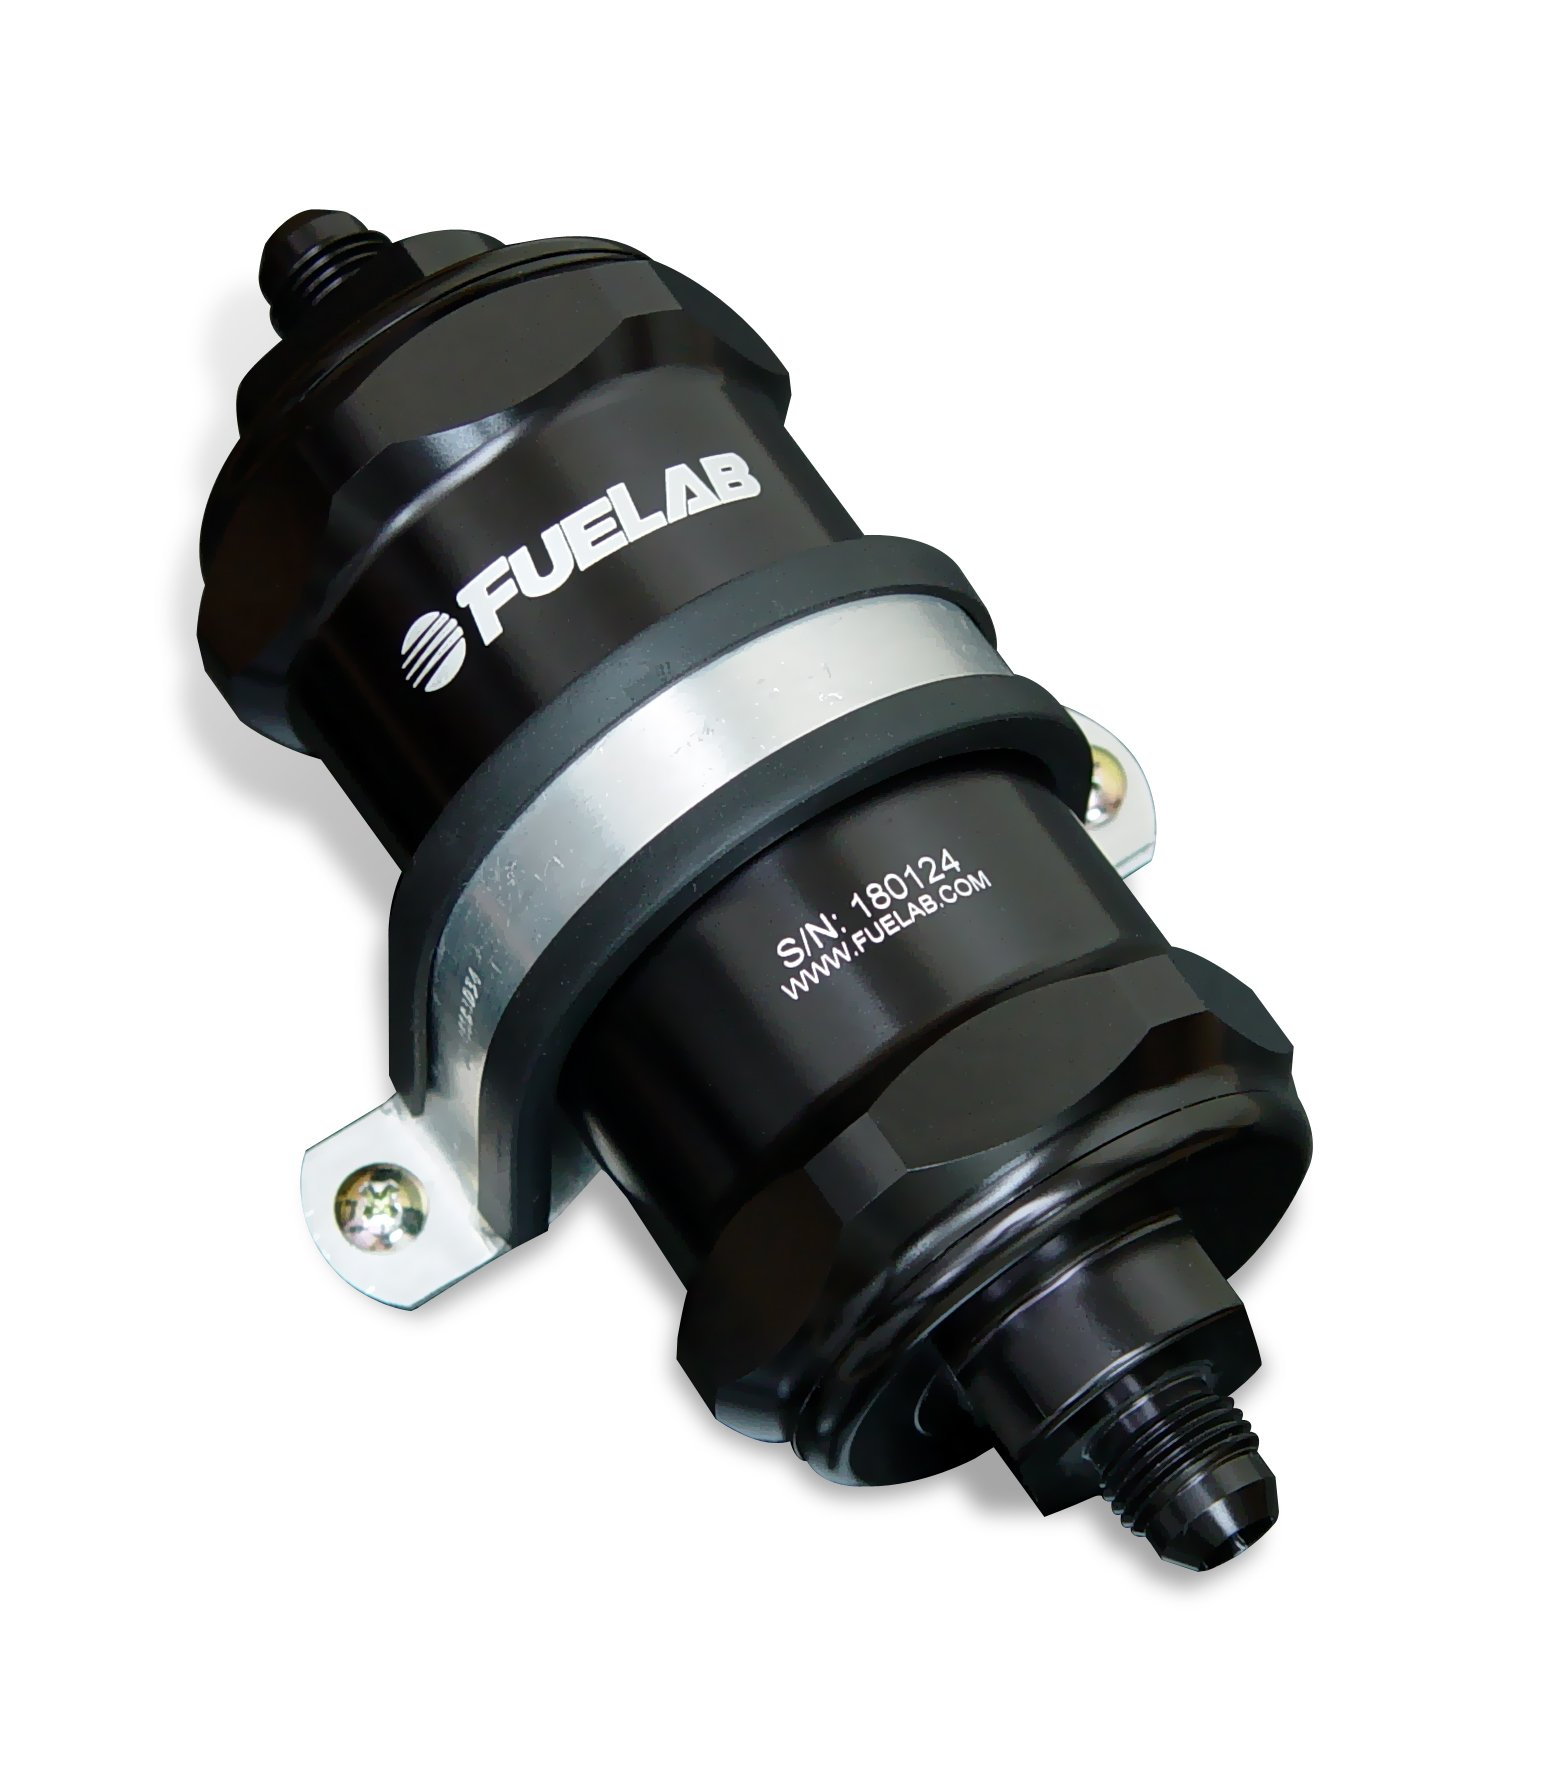 Fuelab 81803-1 Black 10 Micron Standard Length In-Line Fuel Filter